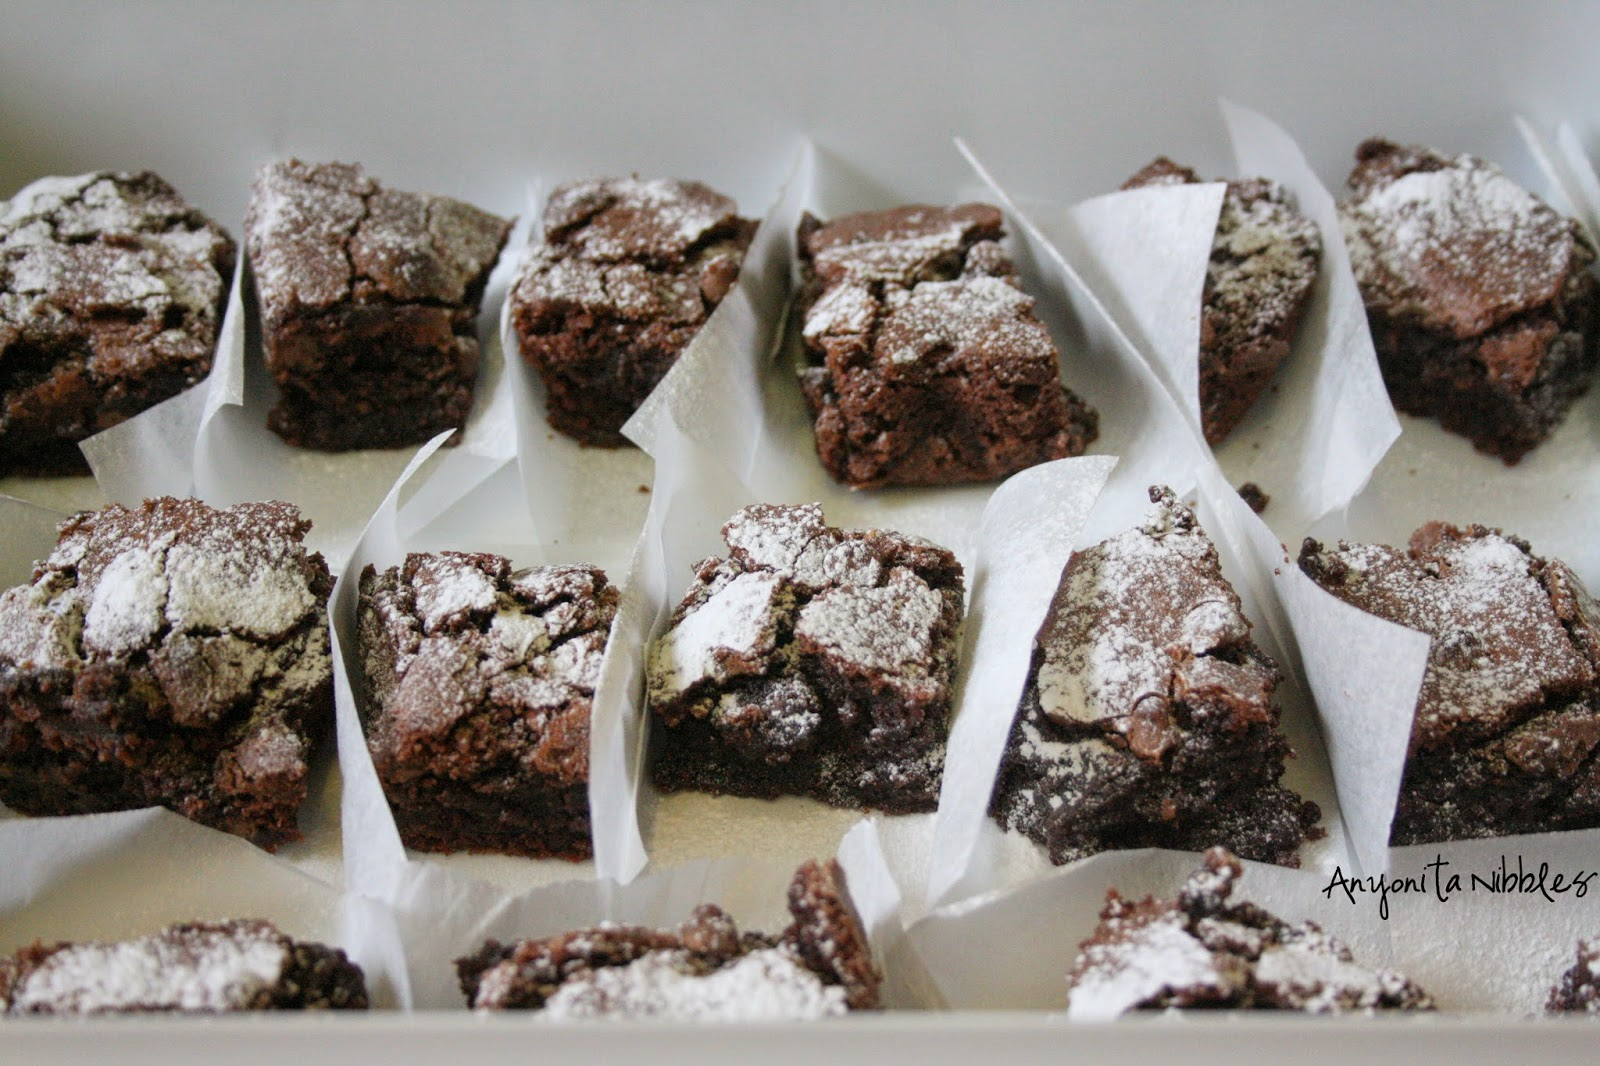 Brownies ready for selling from Anyonita Nibbles